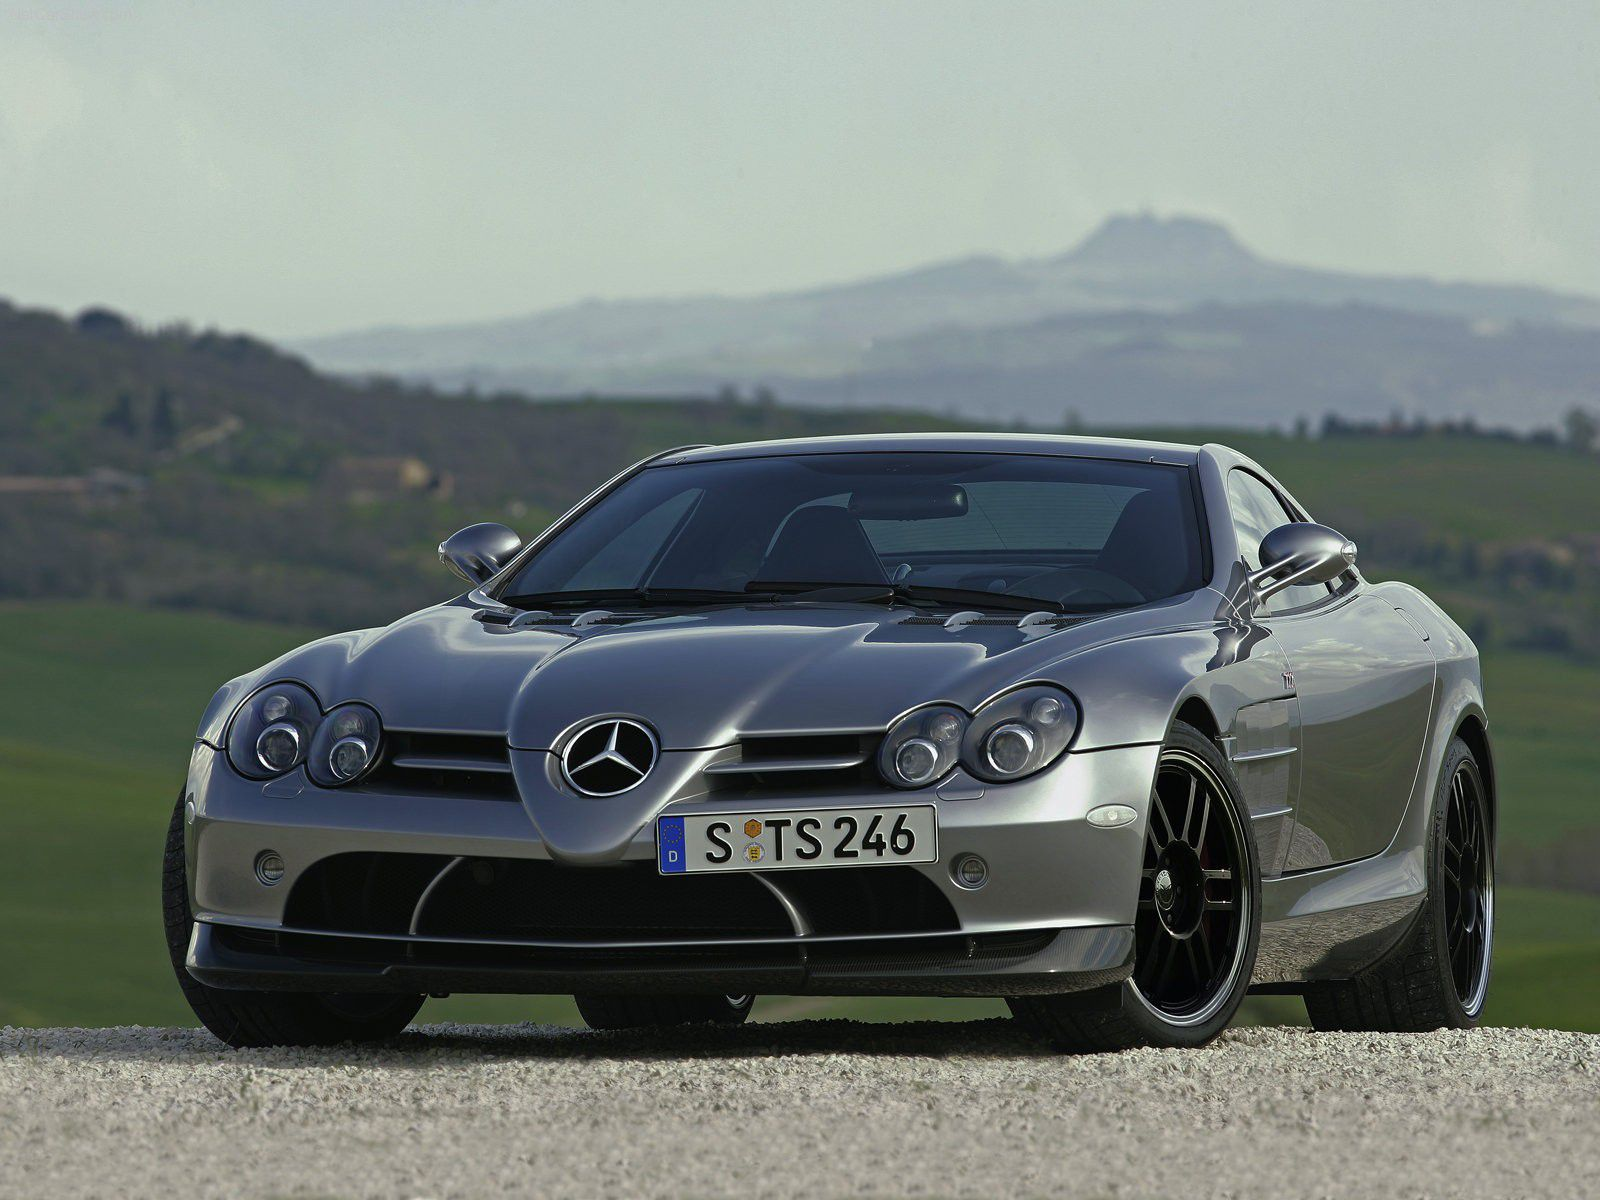 "VOITURES DE LEGENDE (1175) : MERCEDES-BENZ  SLR McLAREN  ""722 EDITION"" - 2007"